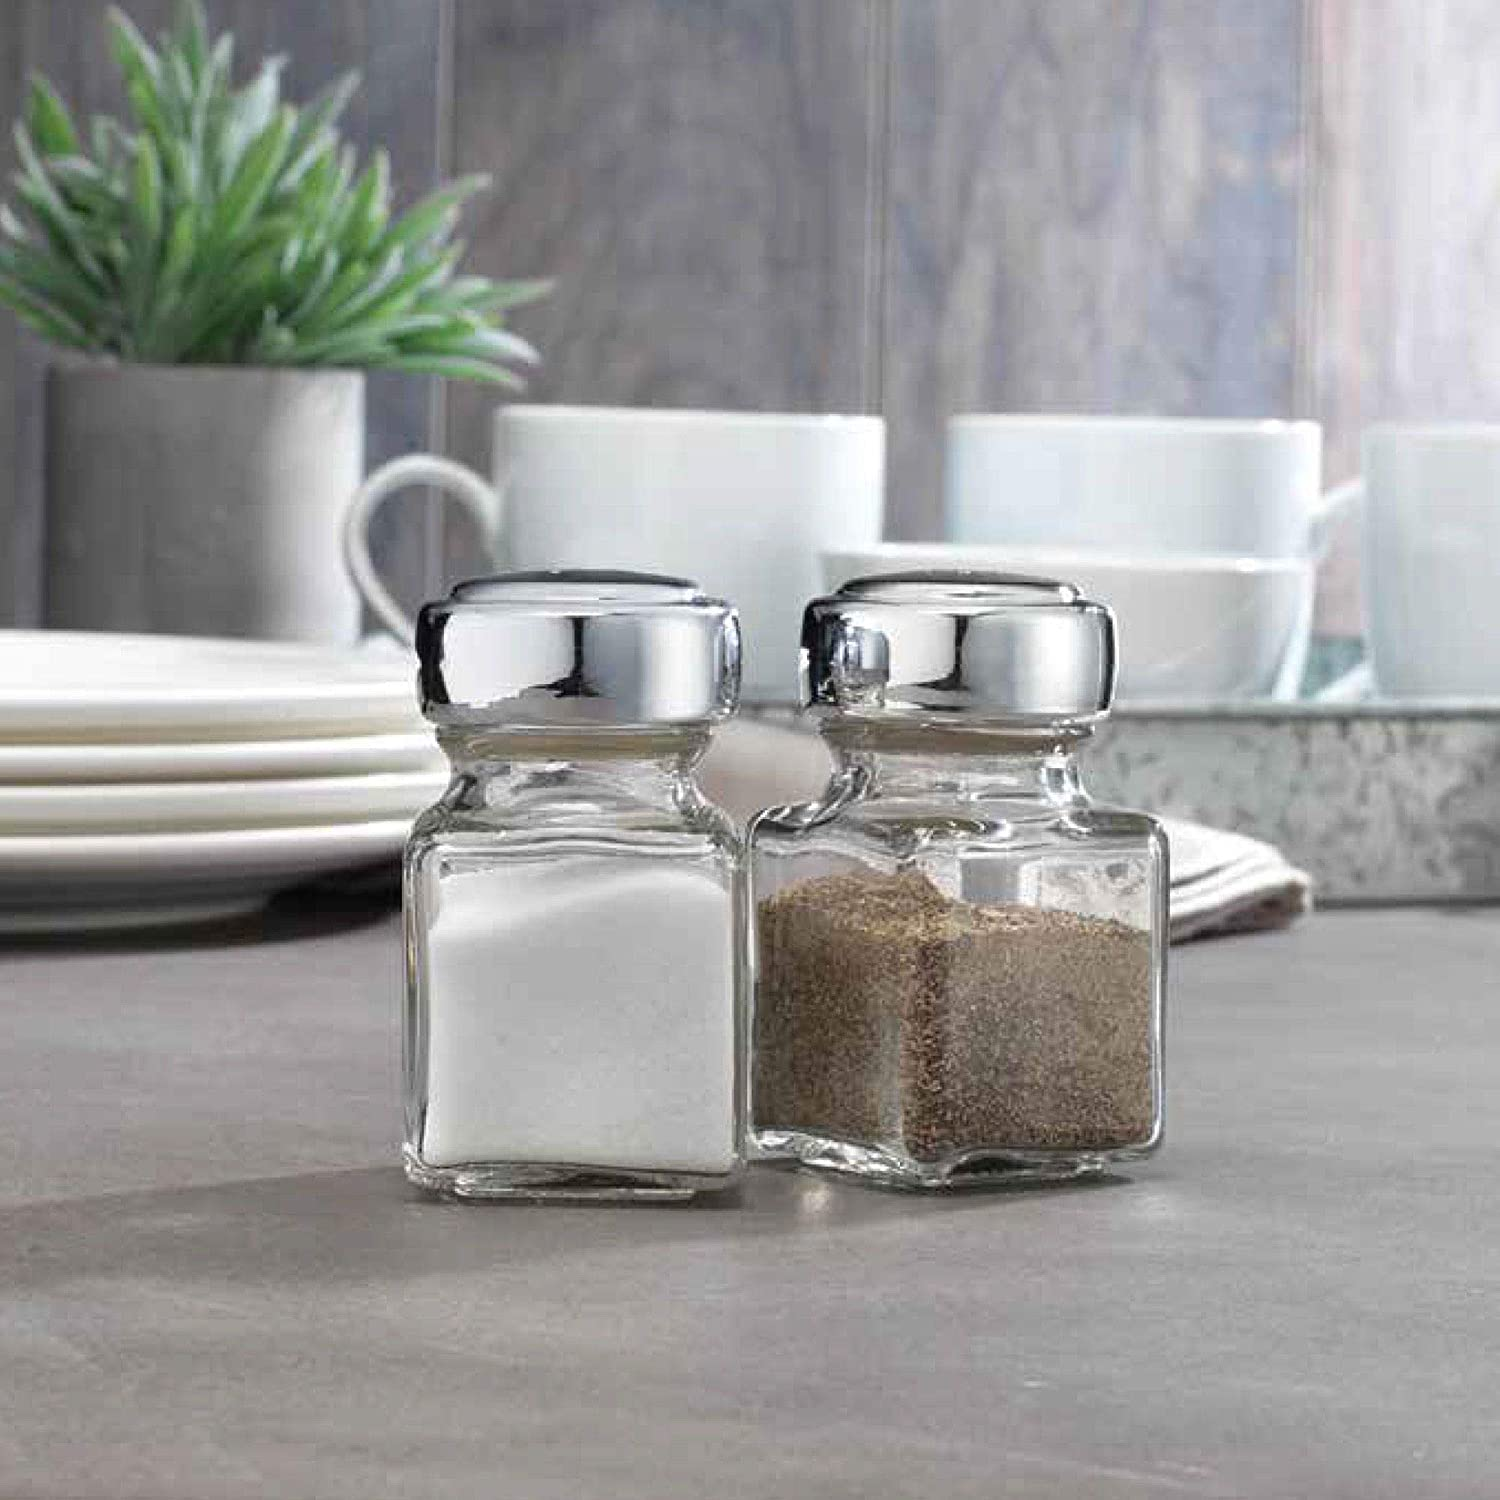 Home Essentials Tablescape Salt And Pepper Shakers 4.4 Oz Each